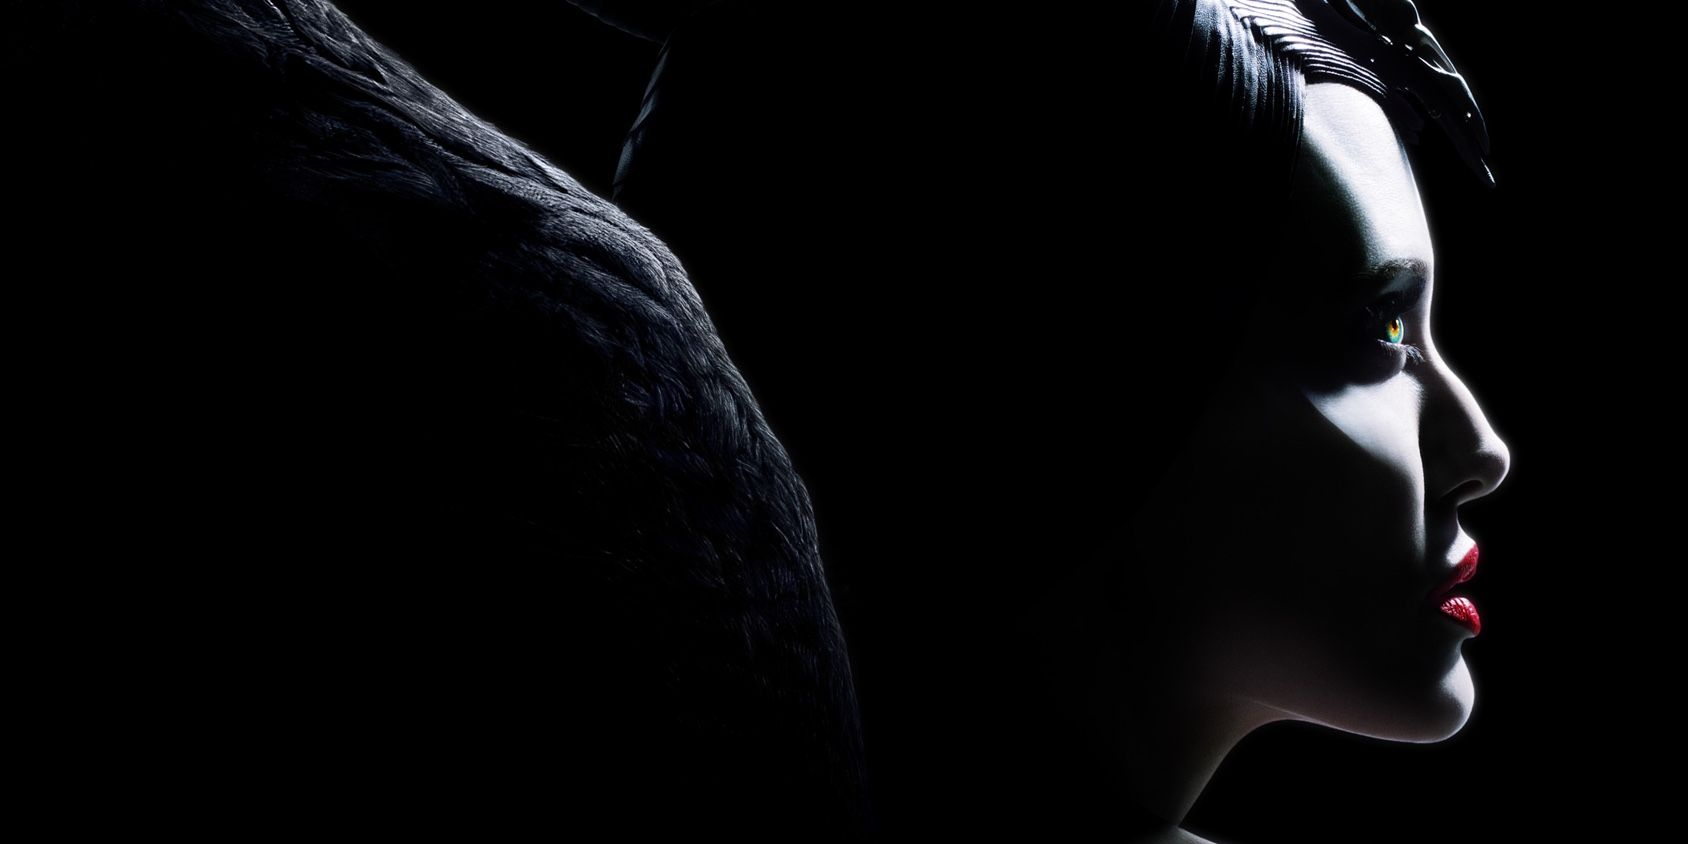 Maleficent: Mistress of Evil Triptych Poster Spotlights Its 3 Female Stars